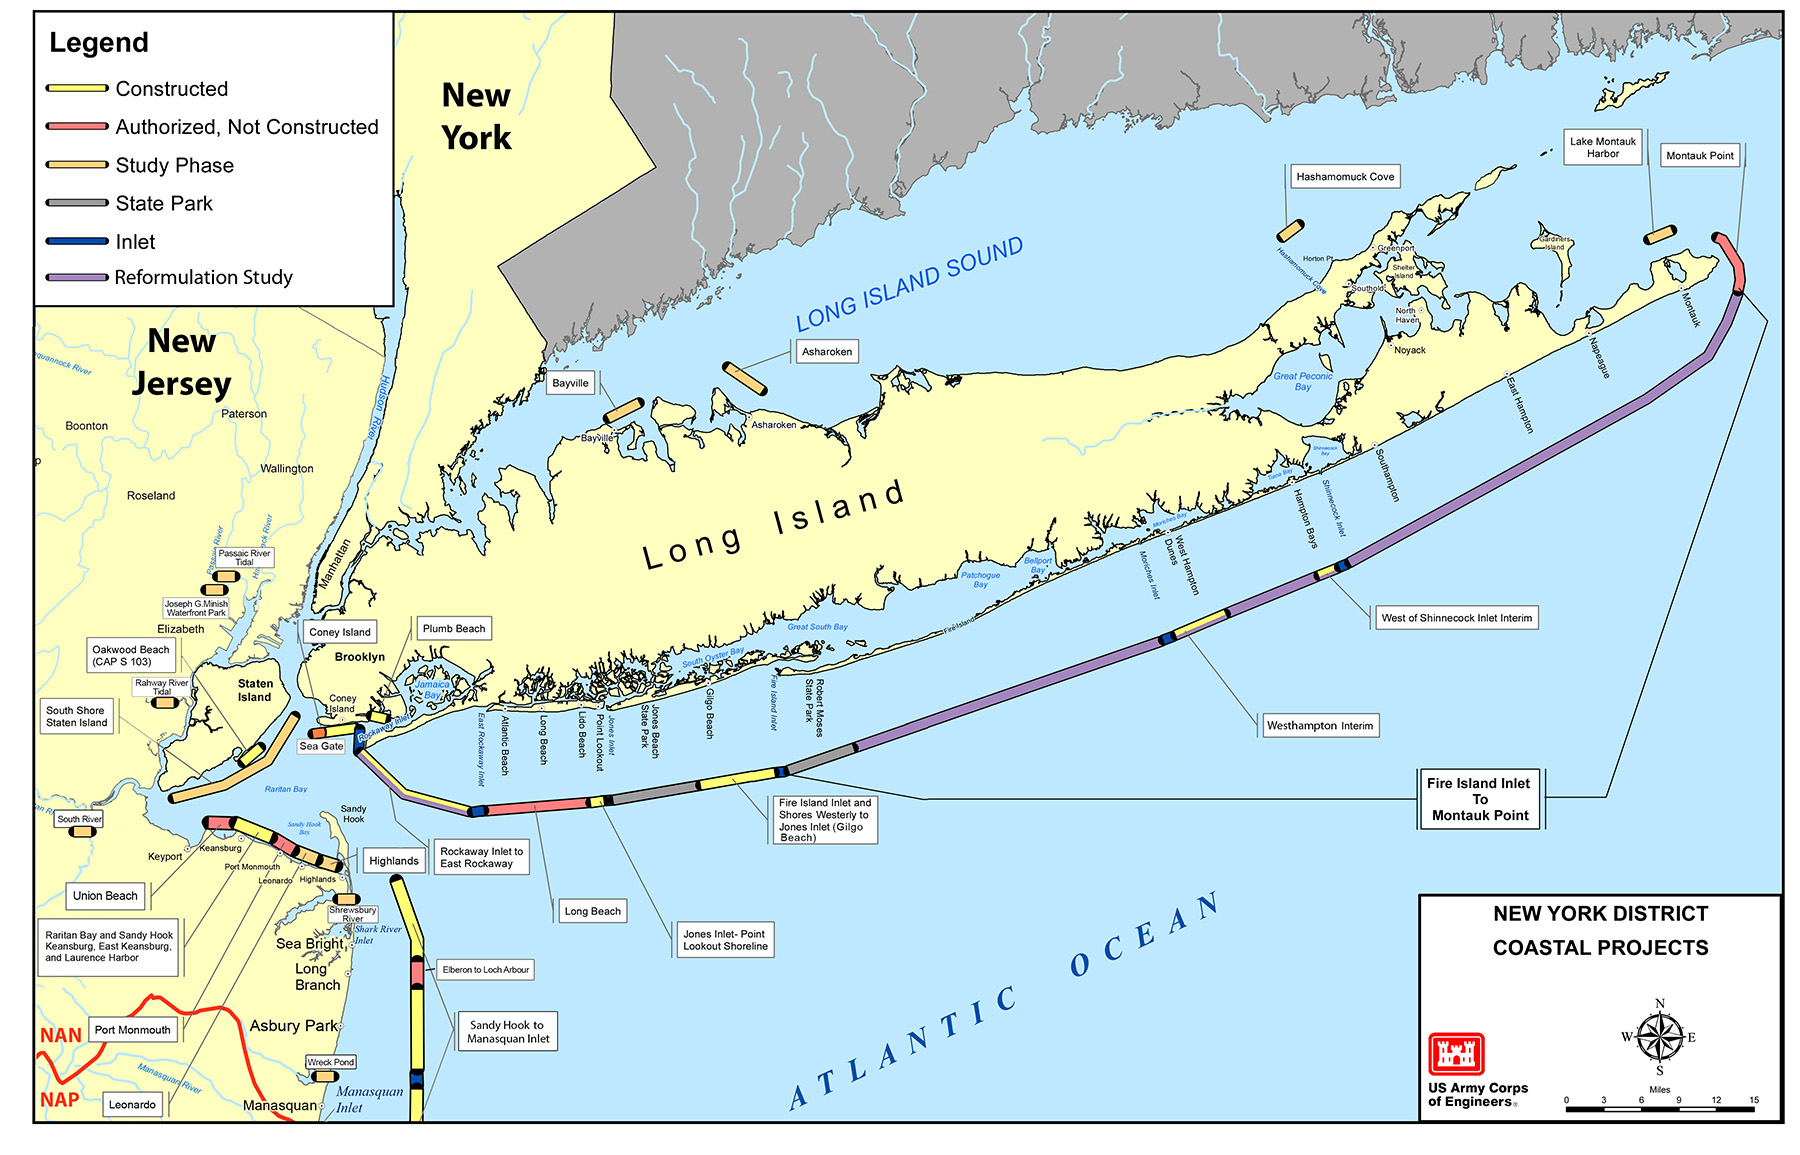 Map of New York District's Coastal Storm Risk Reduction Projects and Studies